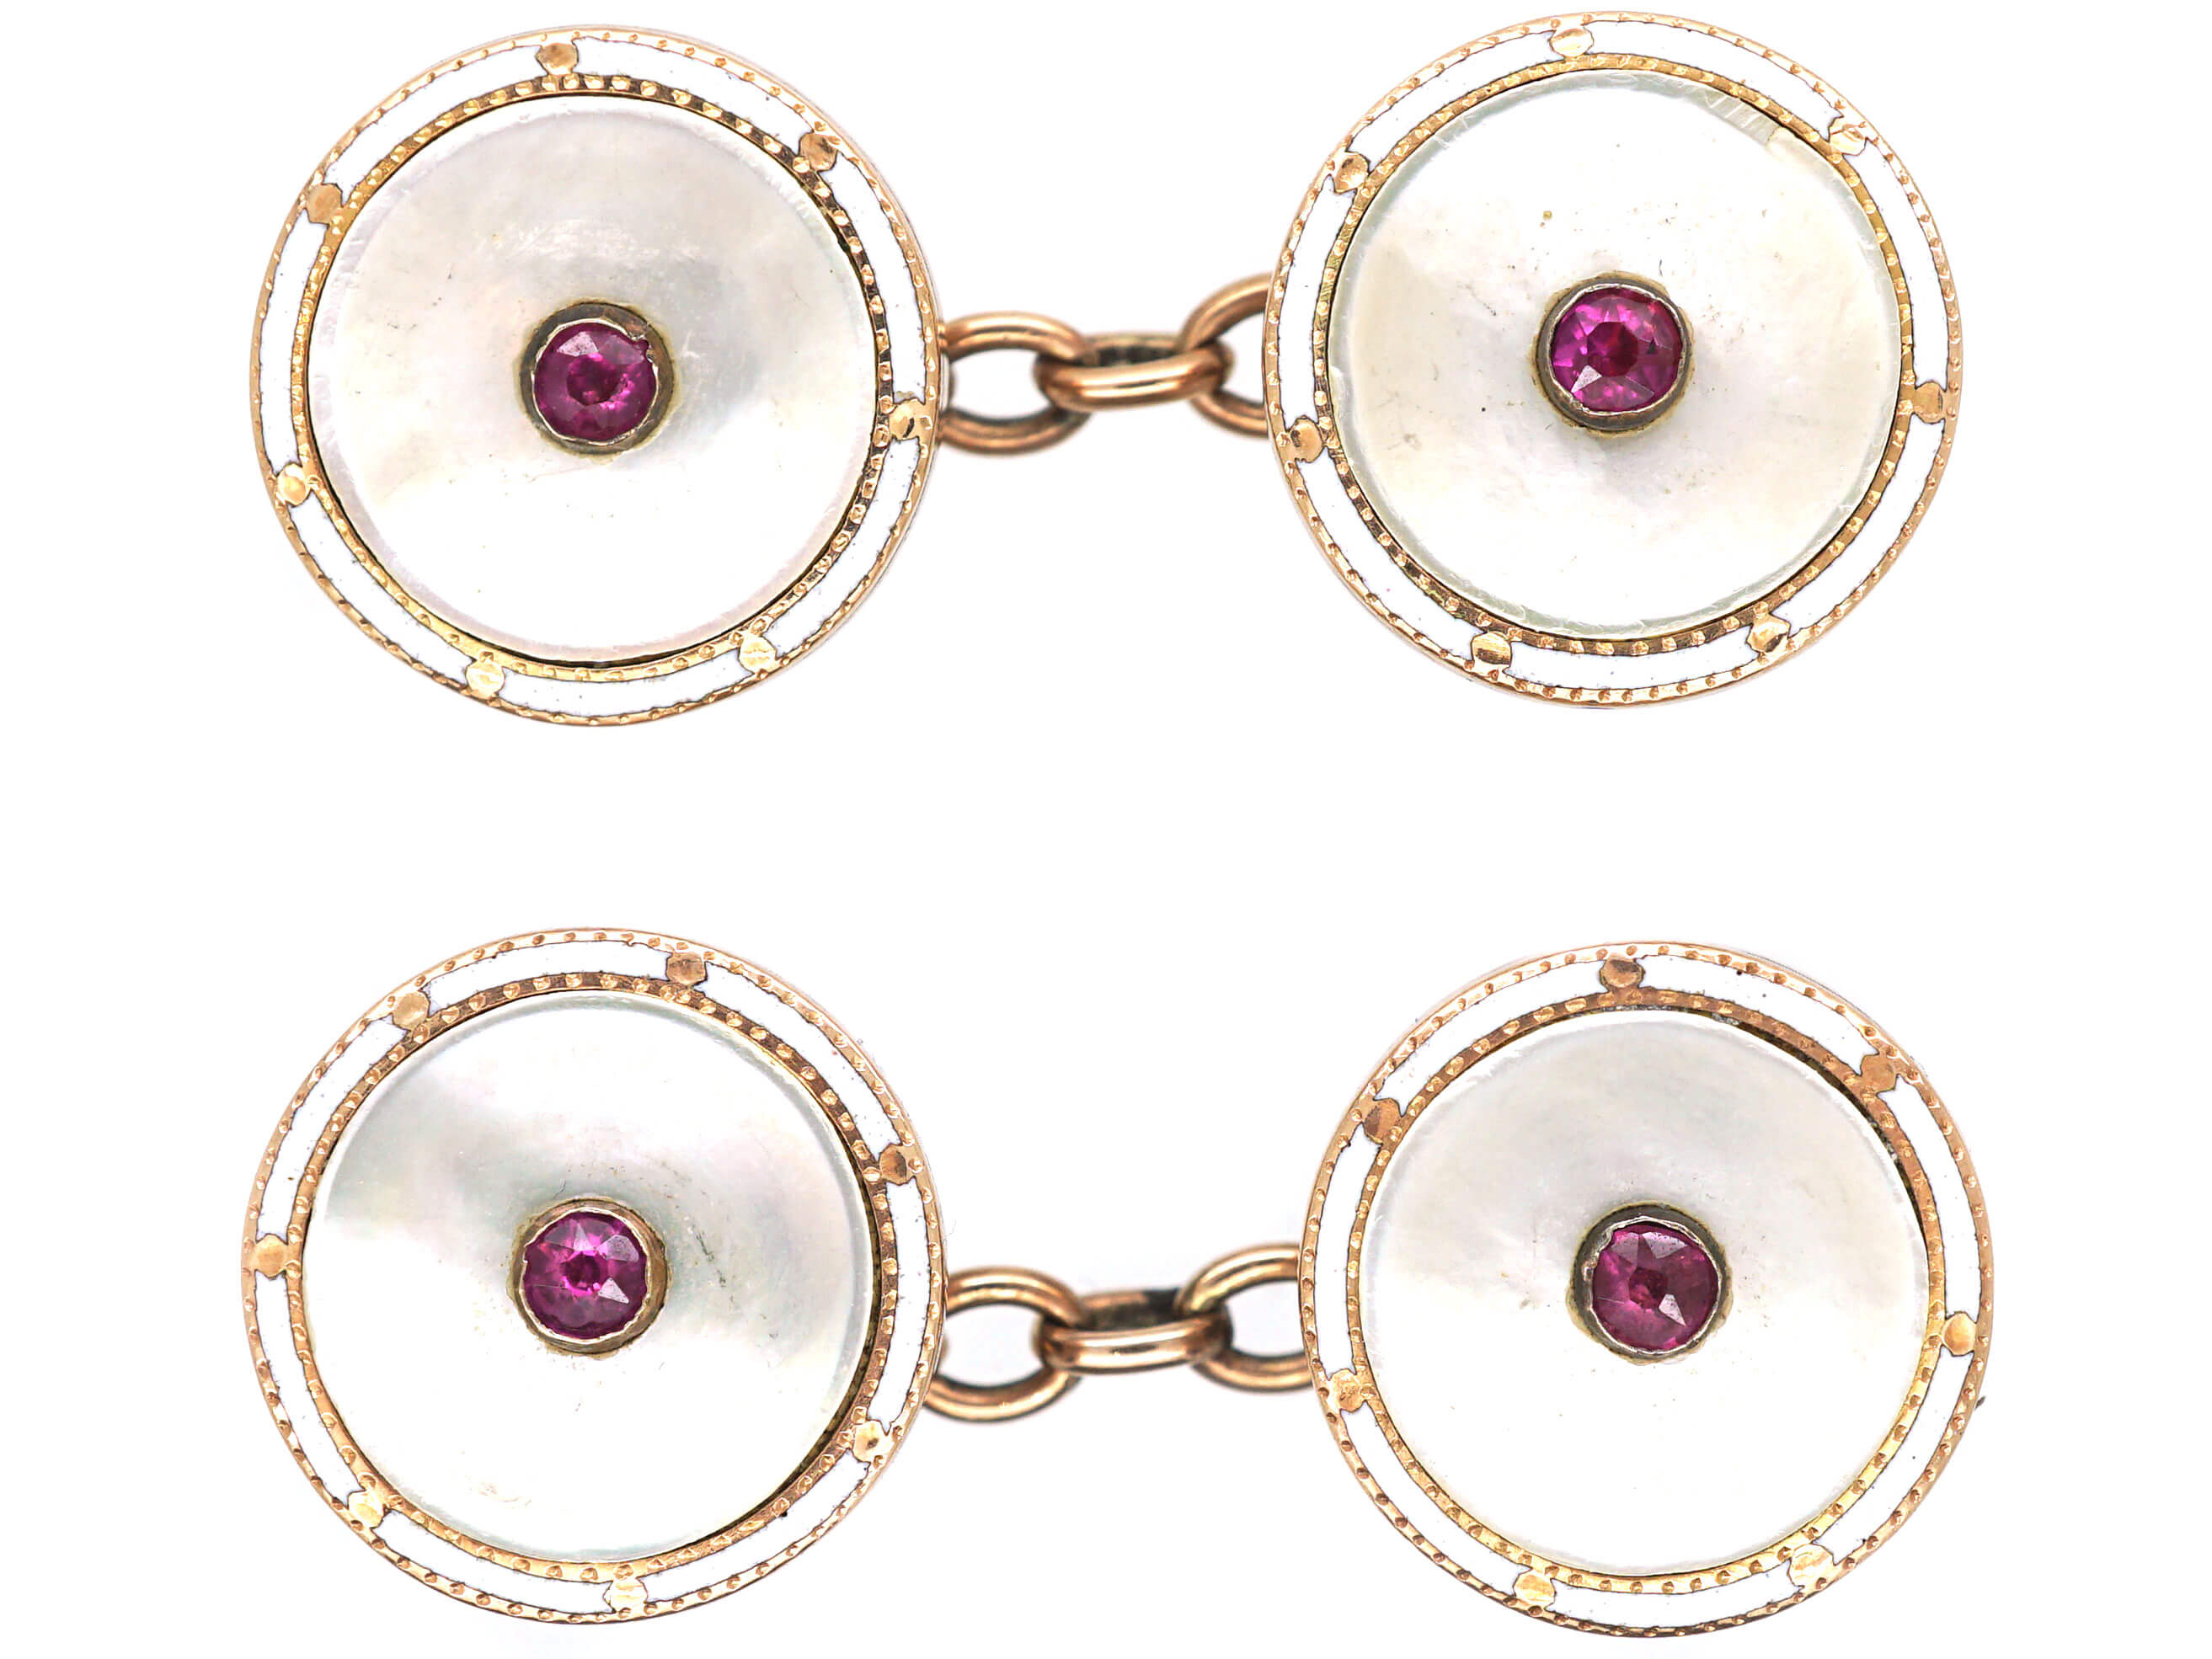 Edwardian 15ct Gold Round Mother of Pearl, White Enamel & Ruby Cufflinks